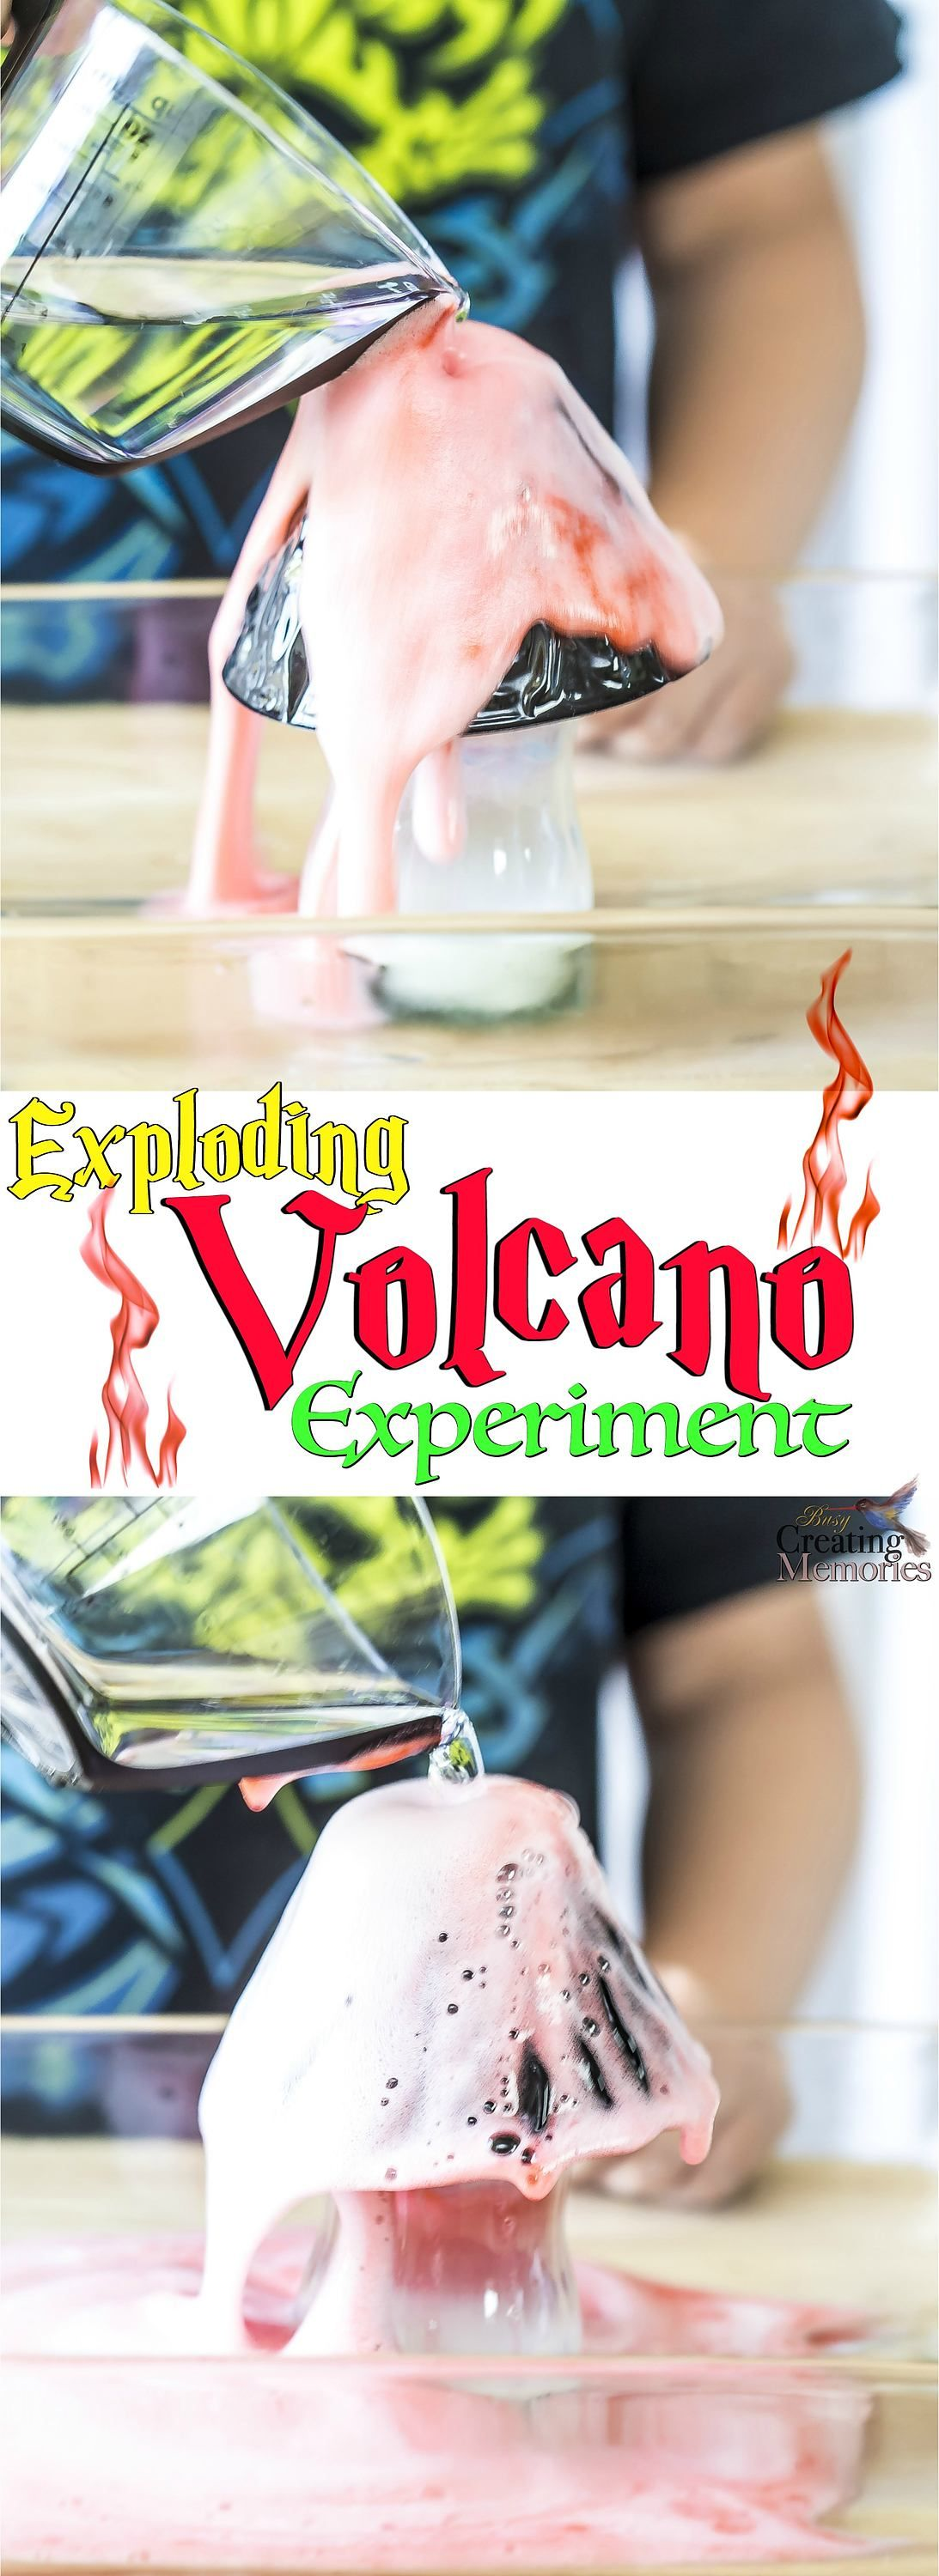 Easy Exploding Volcano Experiment For Kids